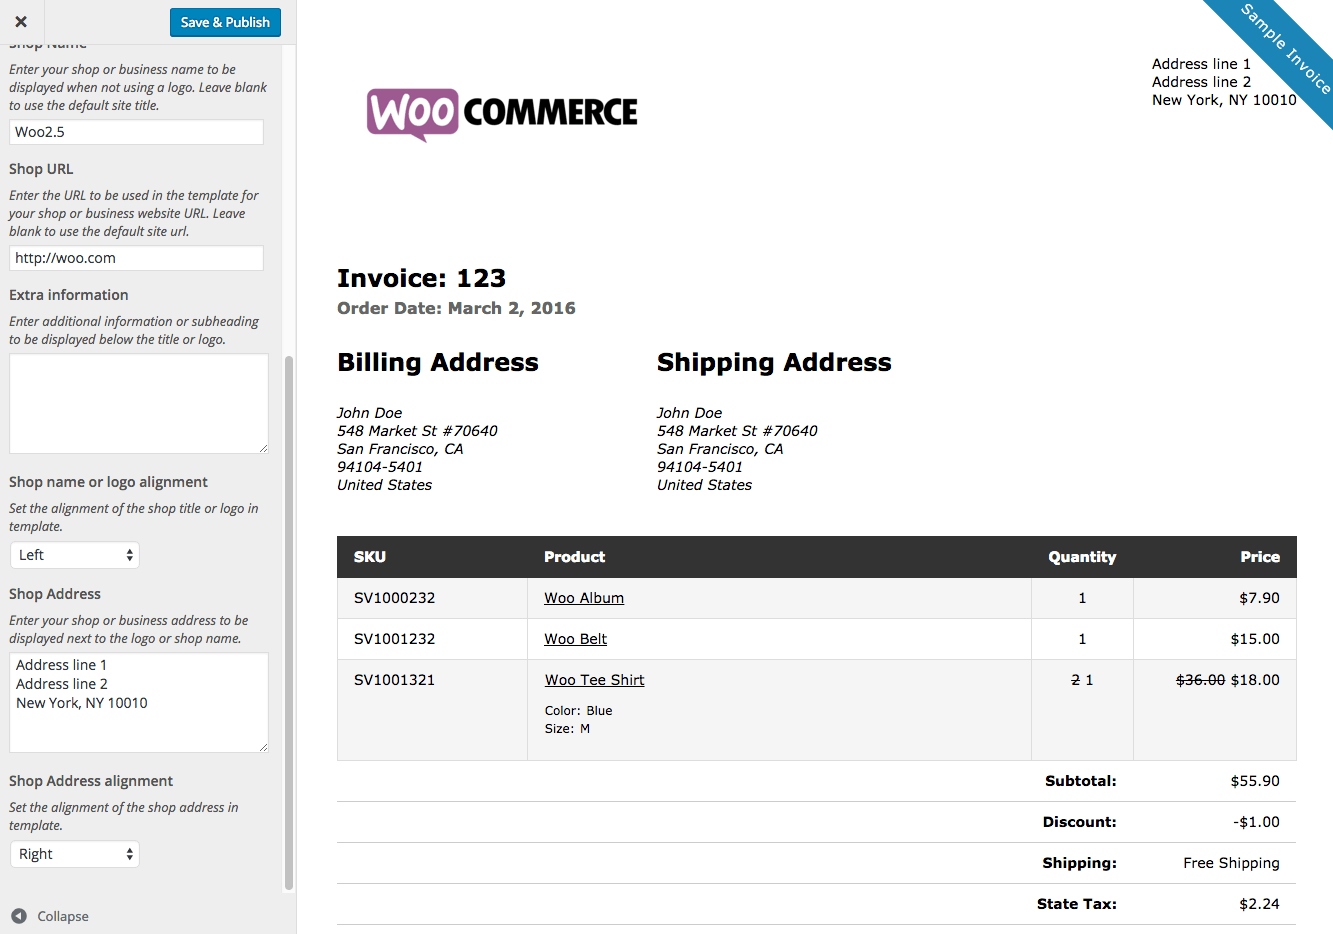 Patriotexpressus  Winsome Woocommerce Print Invoices Amp Packing Lists  Woocommerce Docs With Excellent Woocommerce Print Invoices  Packing Lists Customizer With Easy On The Eye Reconciling Invoices Also Verizon Invoice In Addition Invoice Price New Cars And Canadian Custom Invoice As Well As Invoice Approval Stamp Additionally Sale Invoice Template From Docswoocommercecom With Patriotexpressus  Excellent Woocommerce Print Invoices Amp Packing Lists  Woocommerce Docs With Easy On The Eye Woocommerce Print Invoices  Packing Lists Customizer And Winsome Reconciling Invoices Also Verizon Invoice In Addition Invoice Price New Cars From Docswoocommercecom